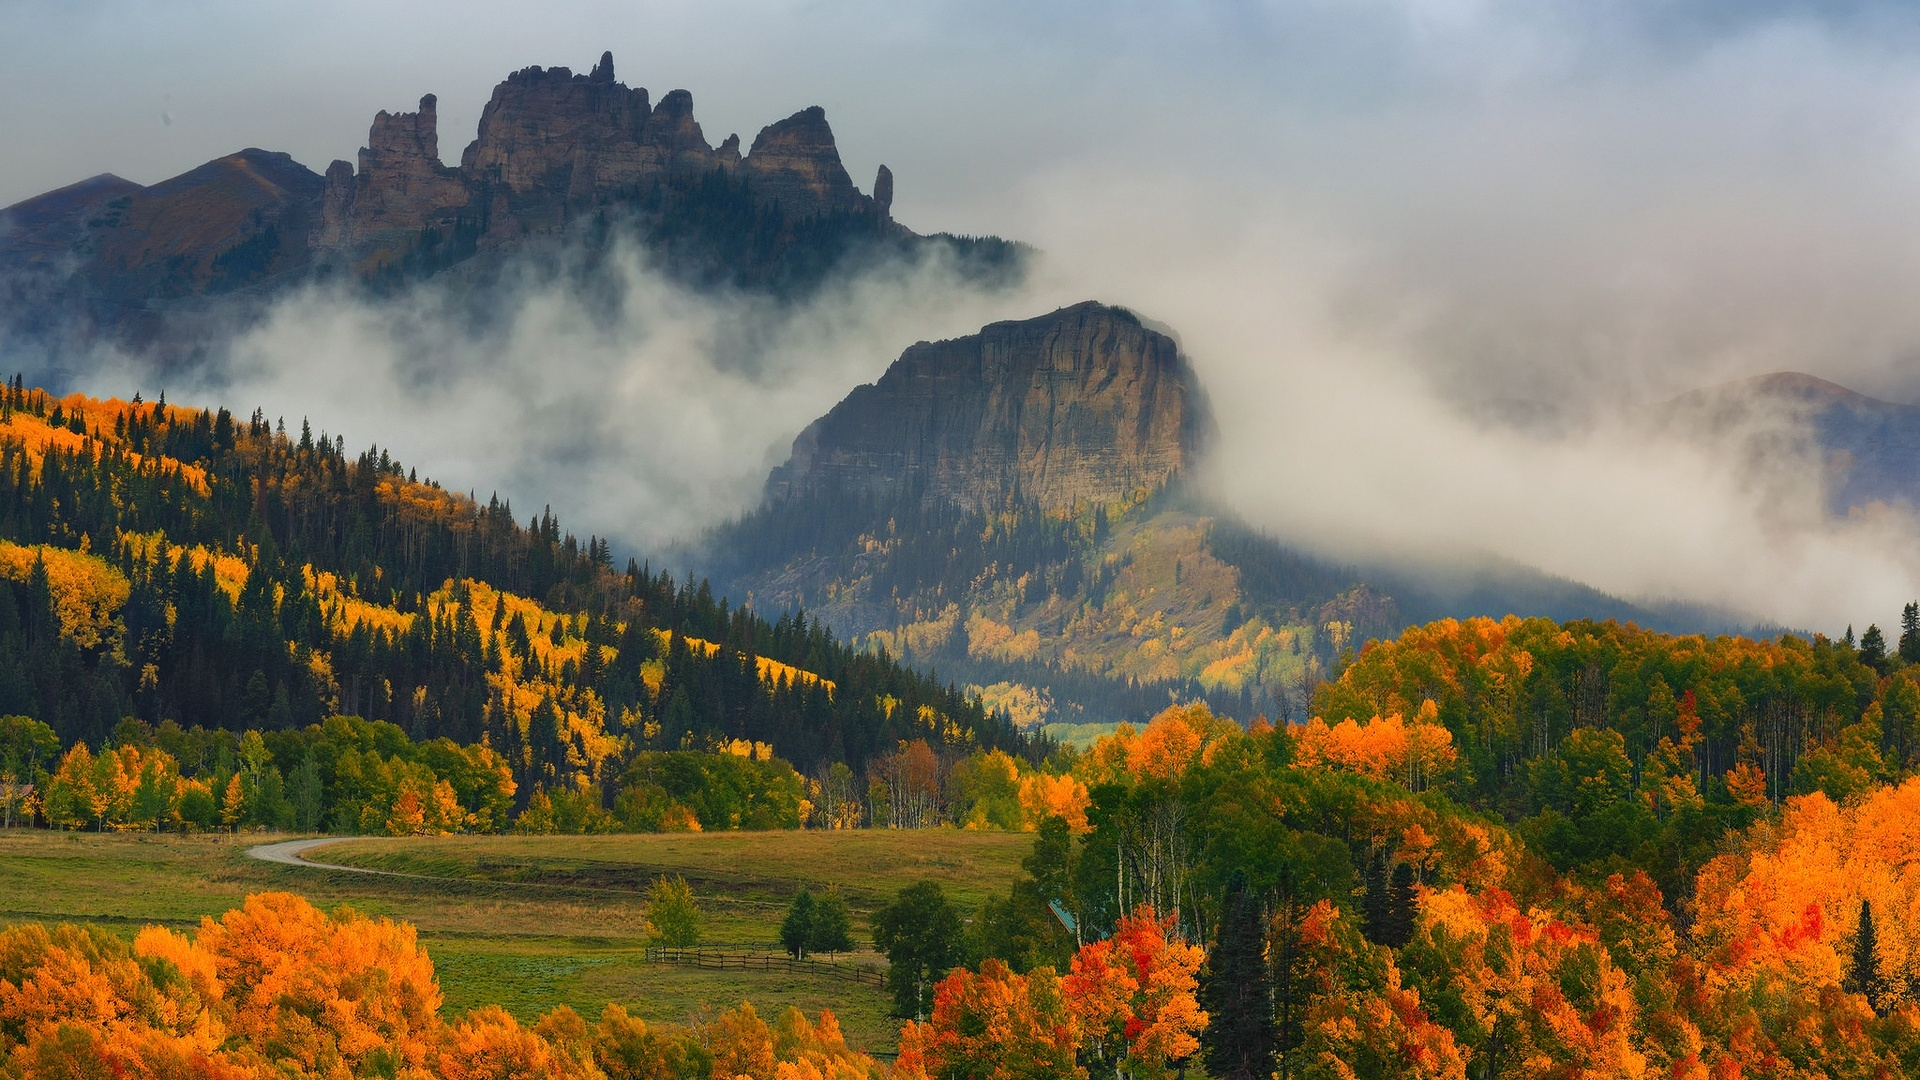 Fall Pictures For Desktop Wallpaper 1920x1080 Autumn Wood Peaks Fog Colorado Desktop Pc And